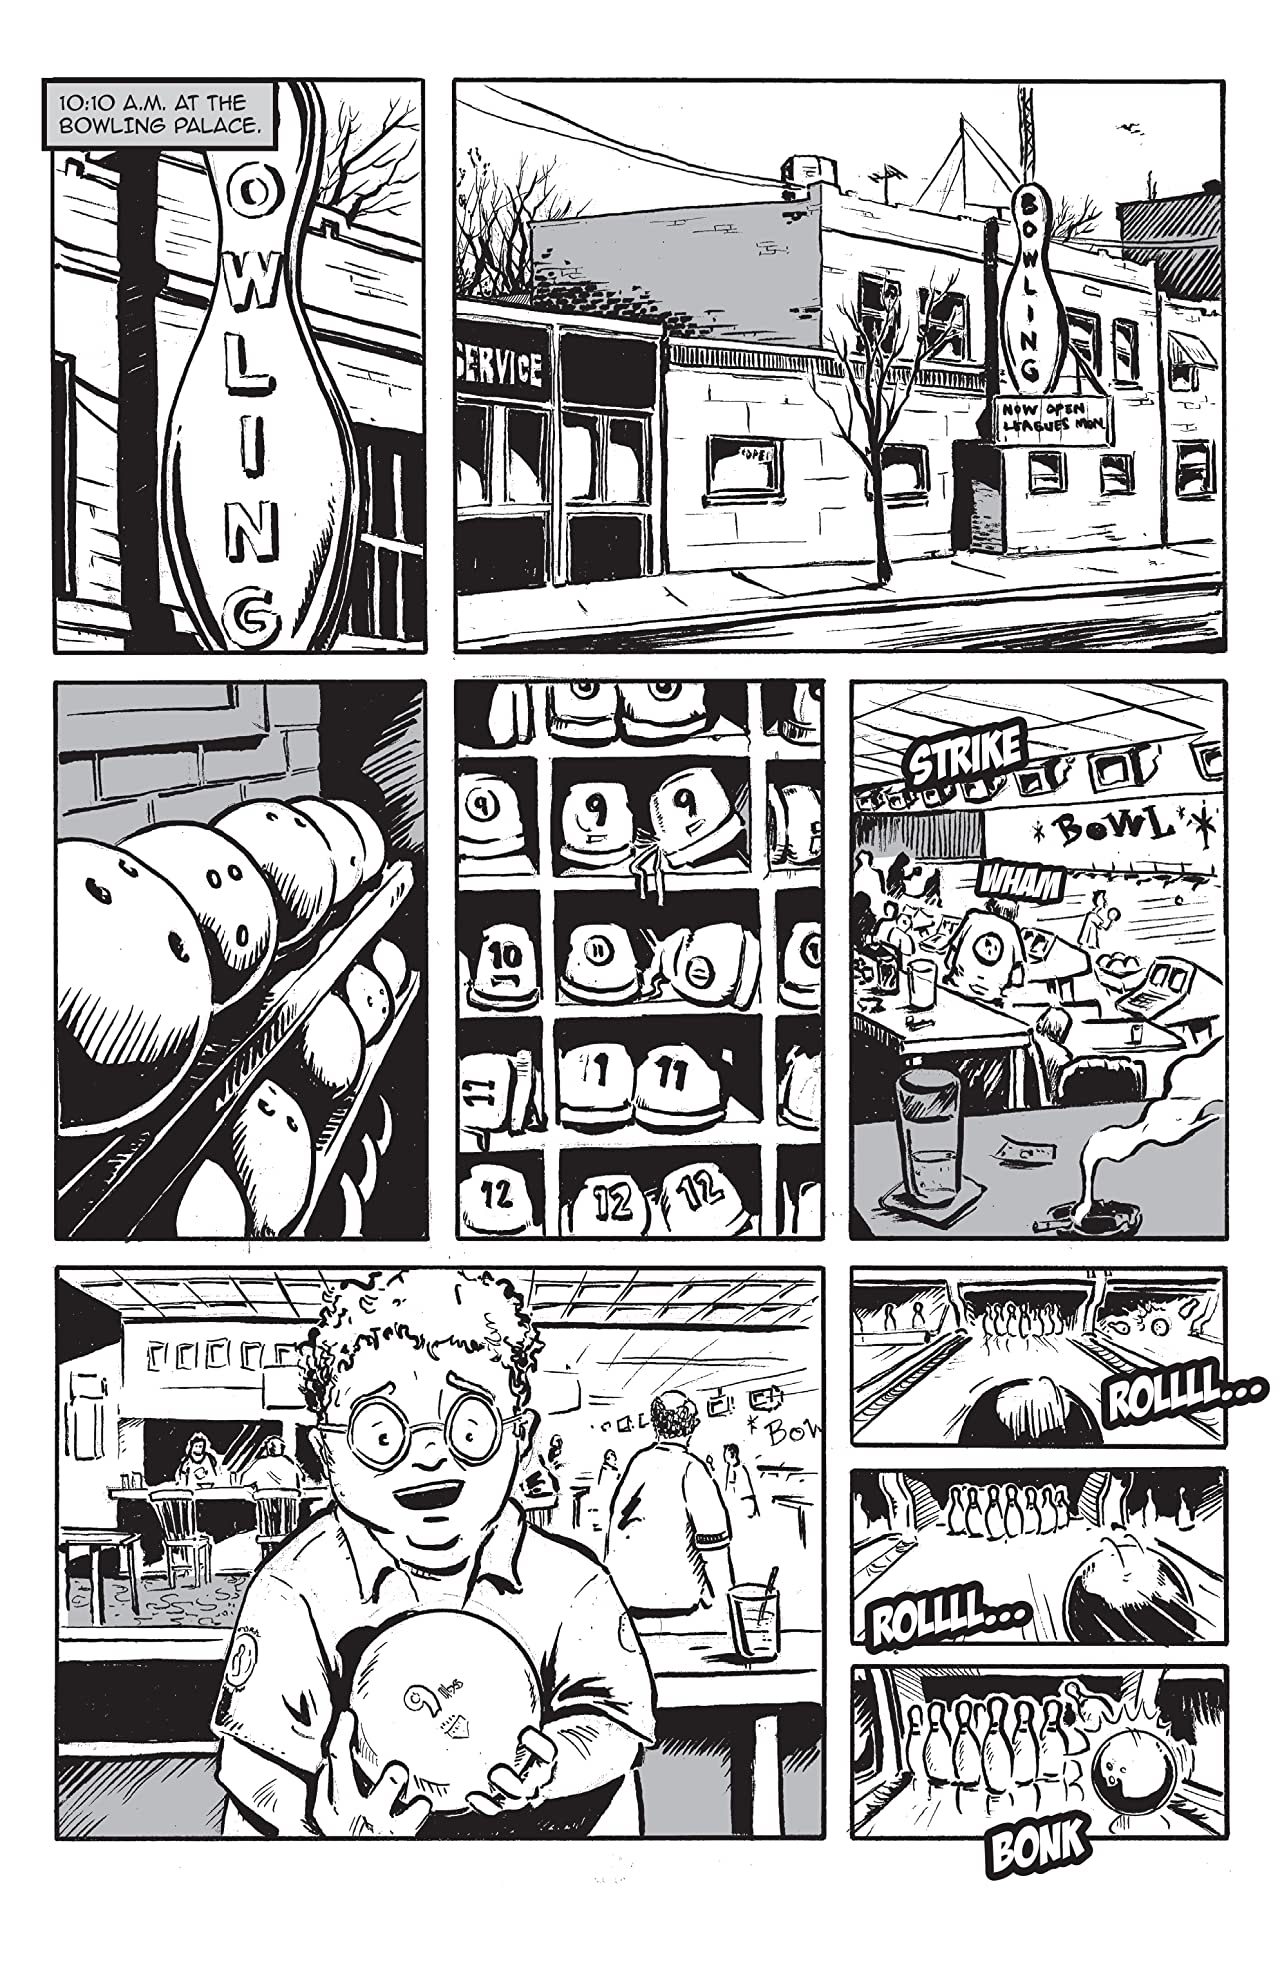 The Misadventures of The Bowling Ball #1